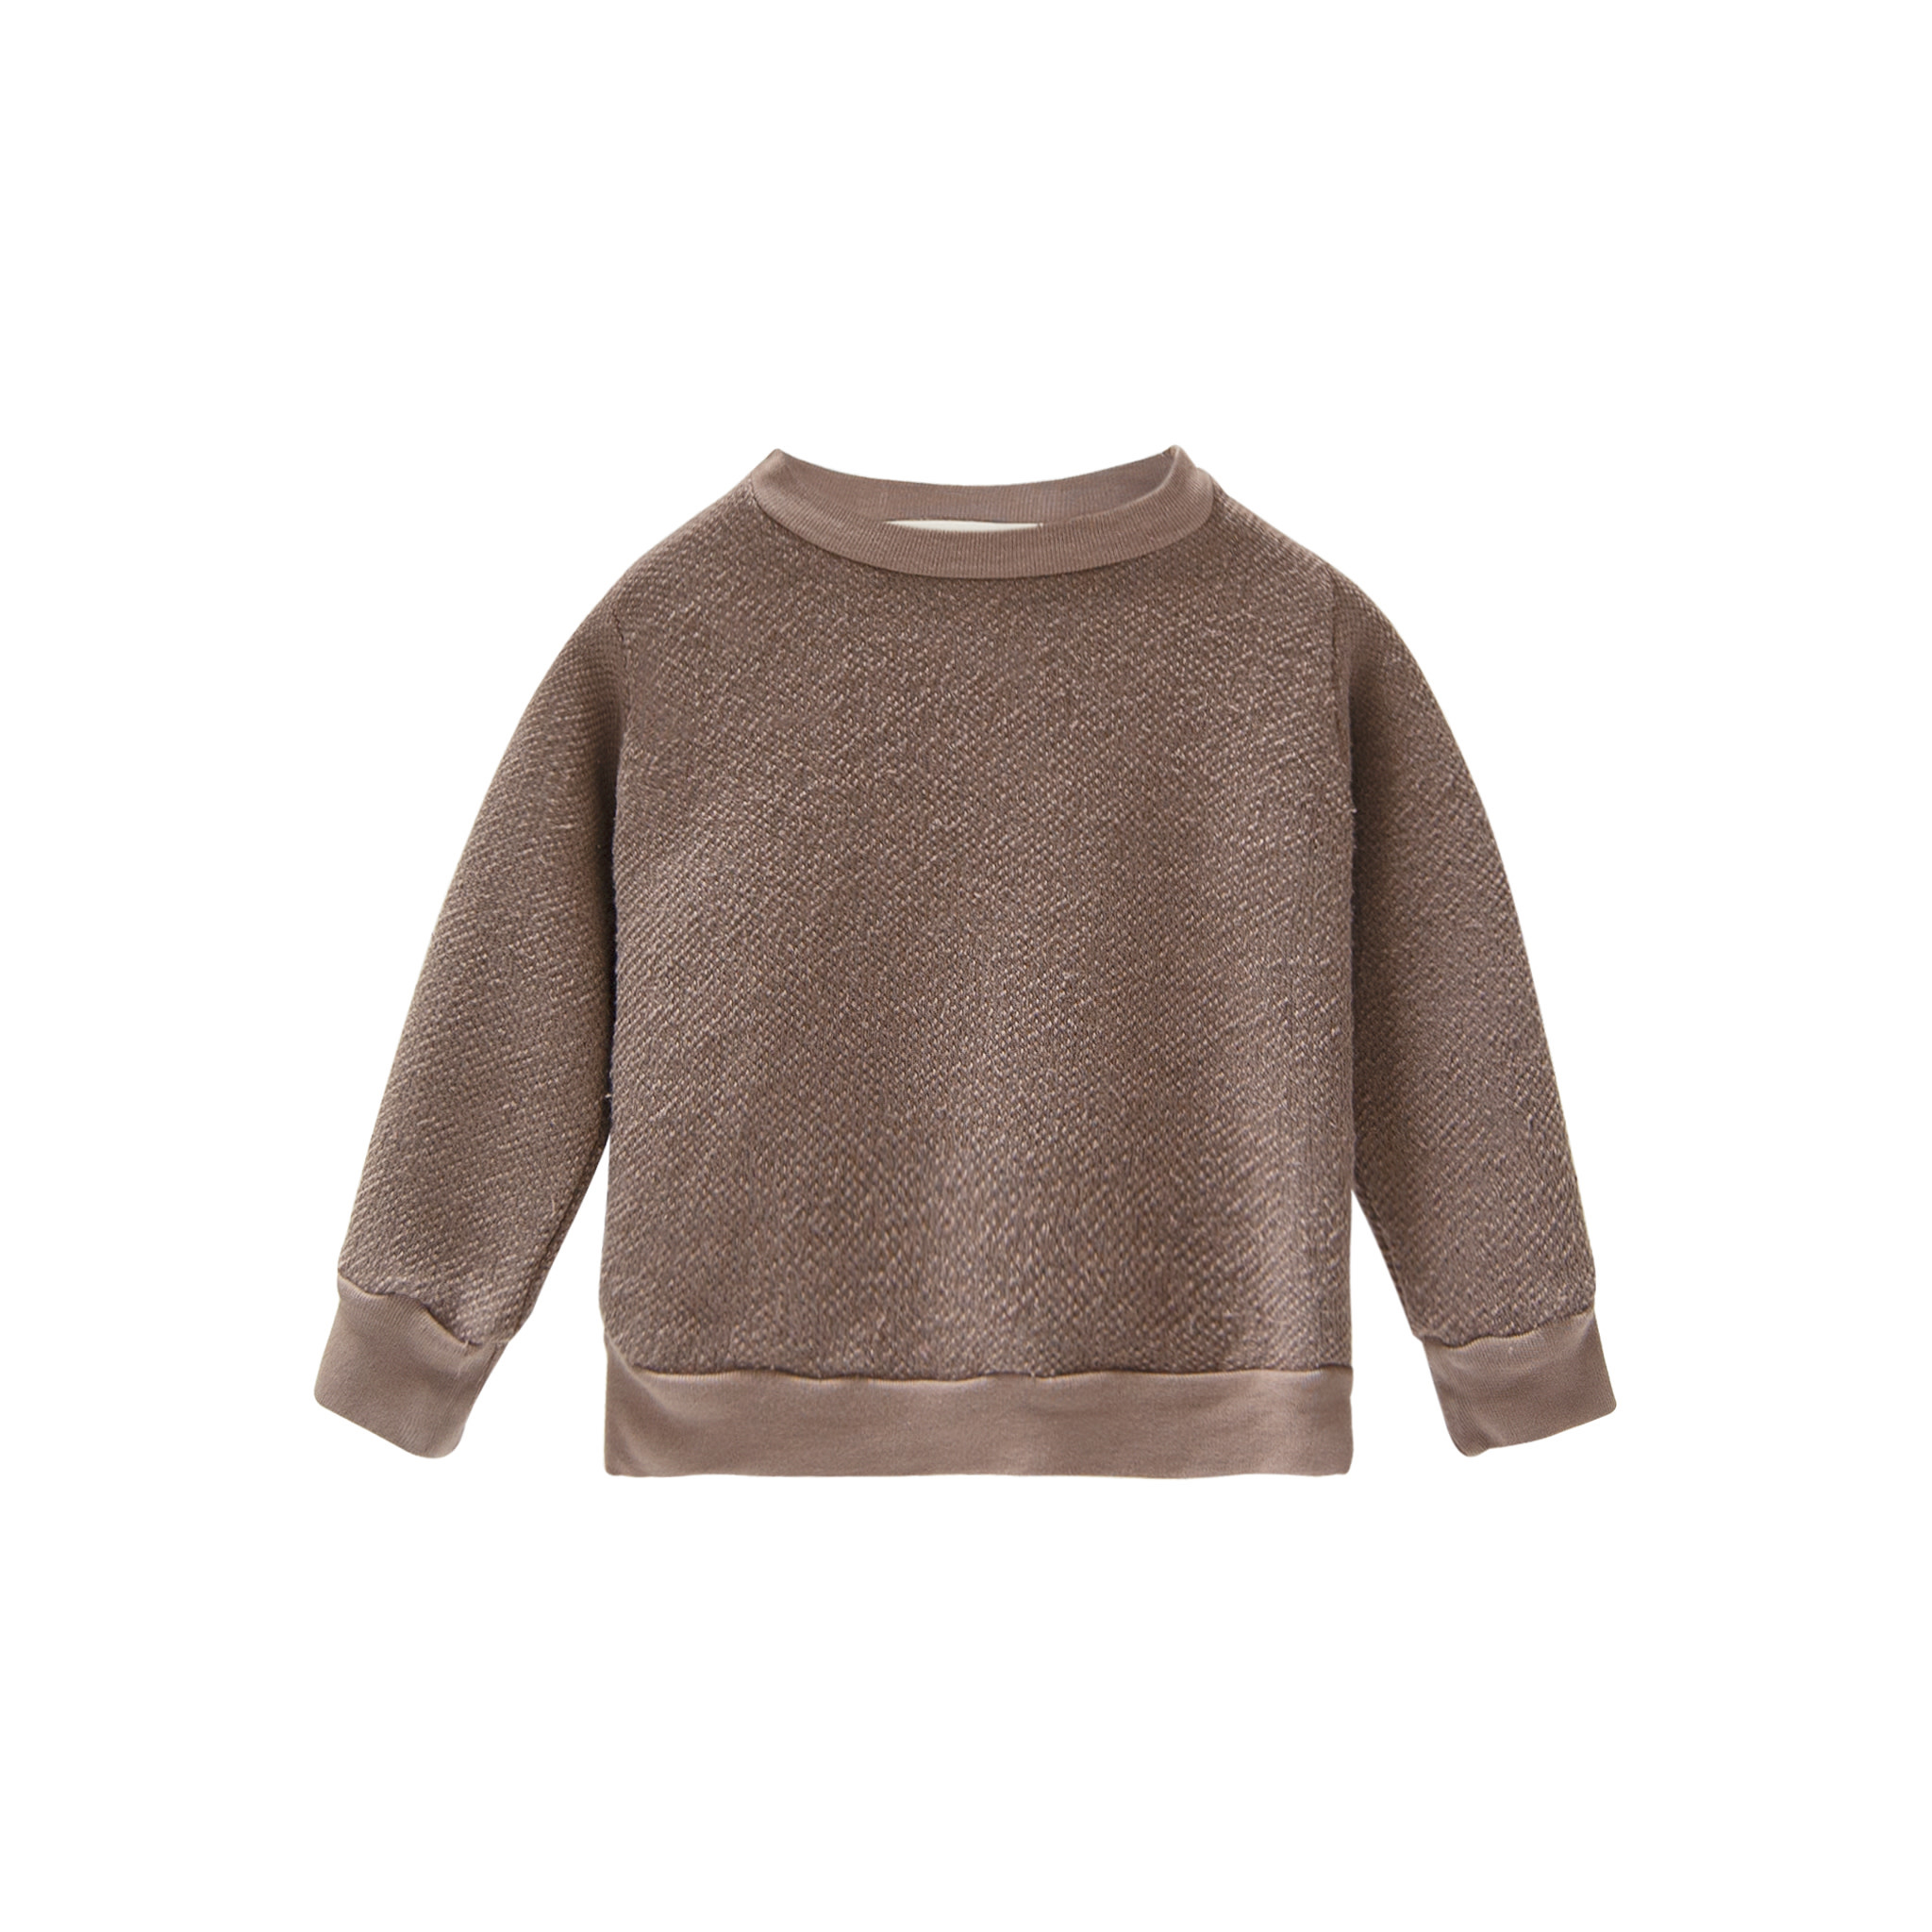 Go Gently Nation Textured Mud Crewneck